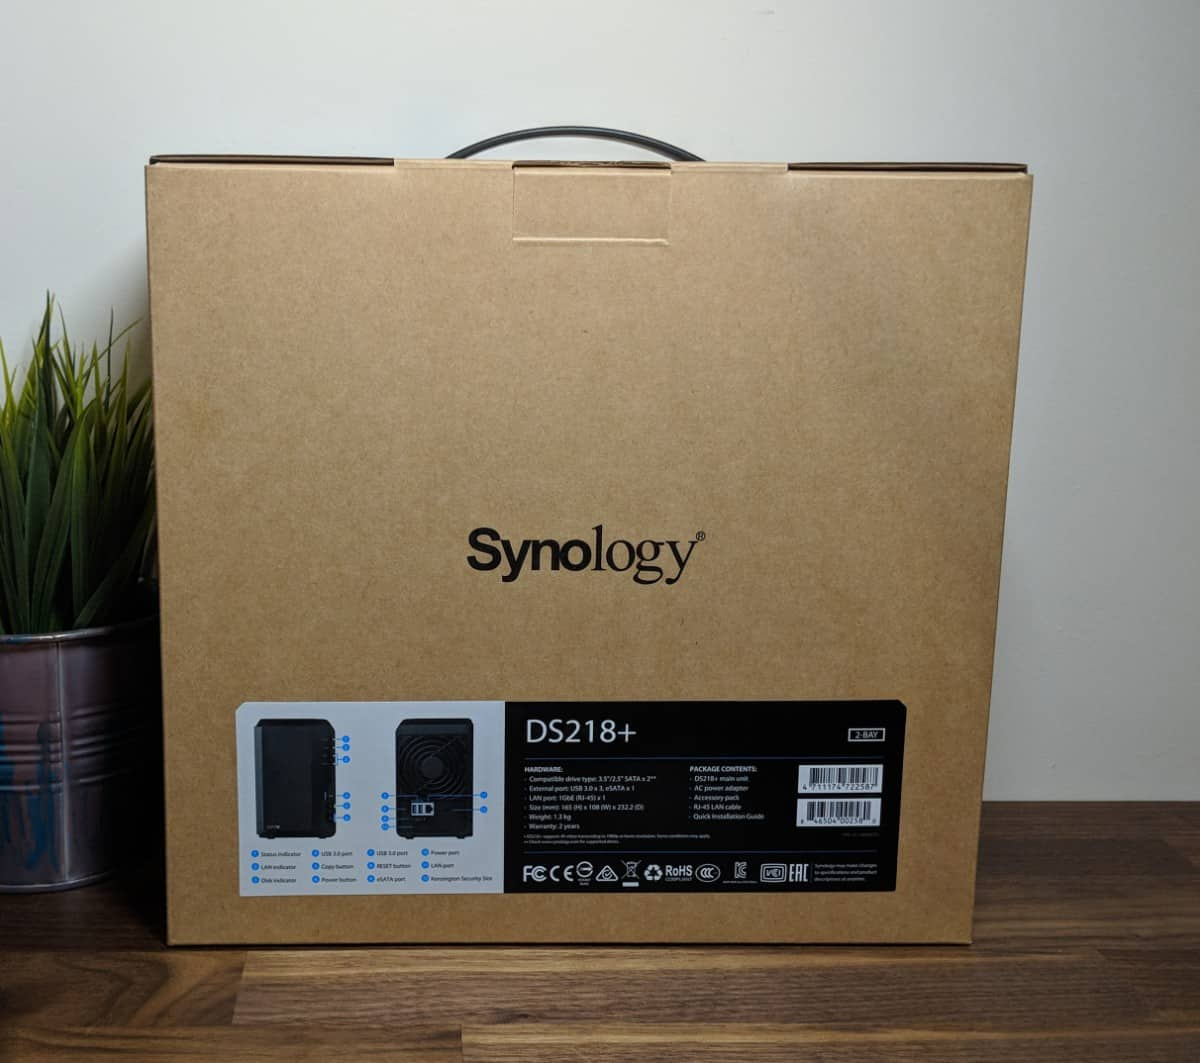 Synology-DS218plus-Photos-03 Synology DS218+ Review